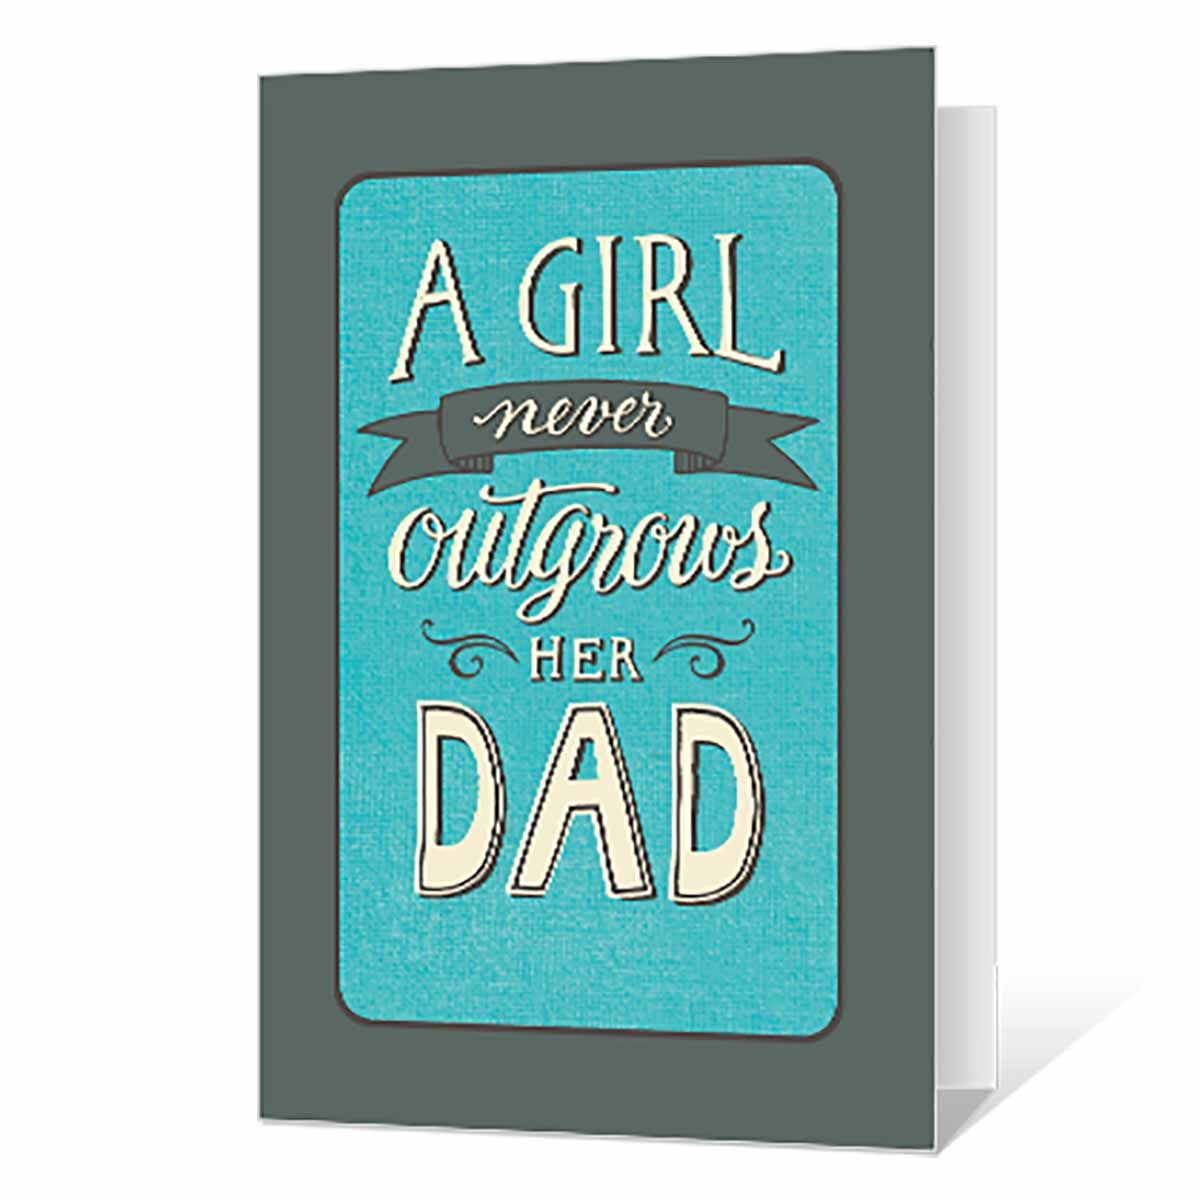 ae70b602cb27 25 Printable Father's Day Cards - Free Printable Cards For Father's Day